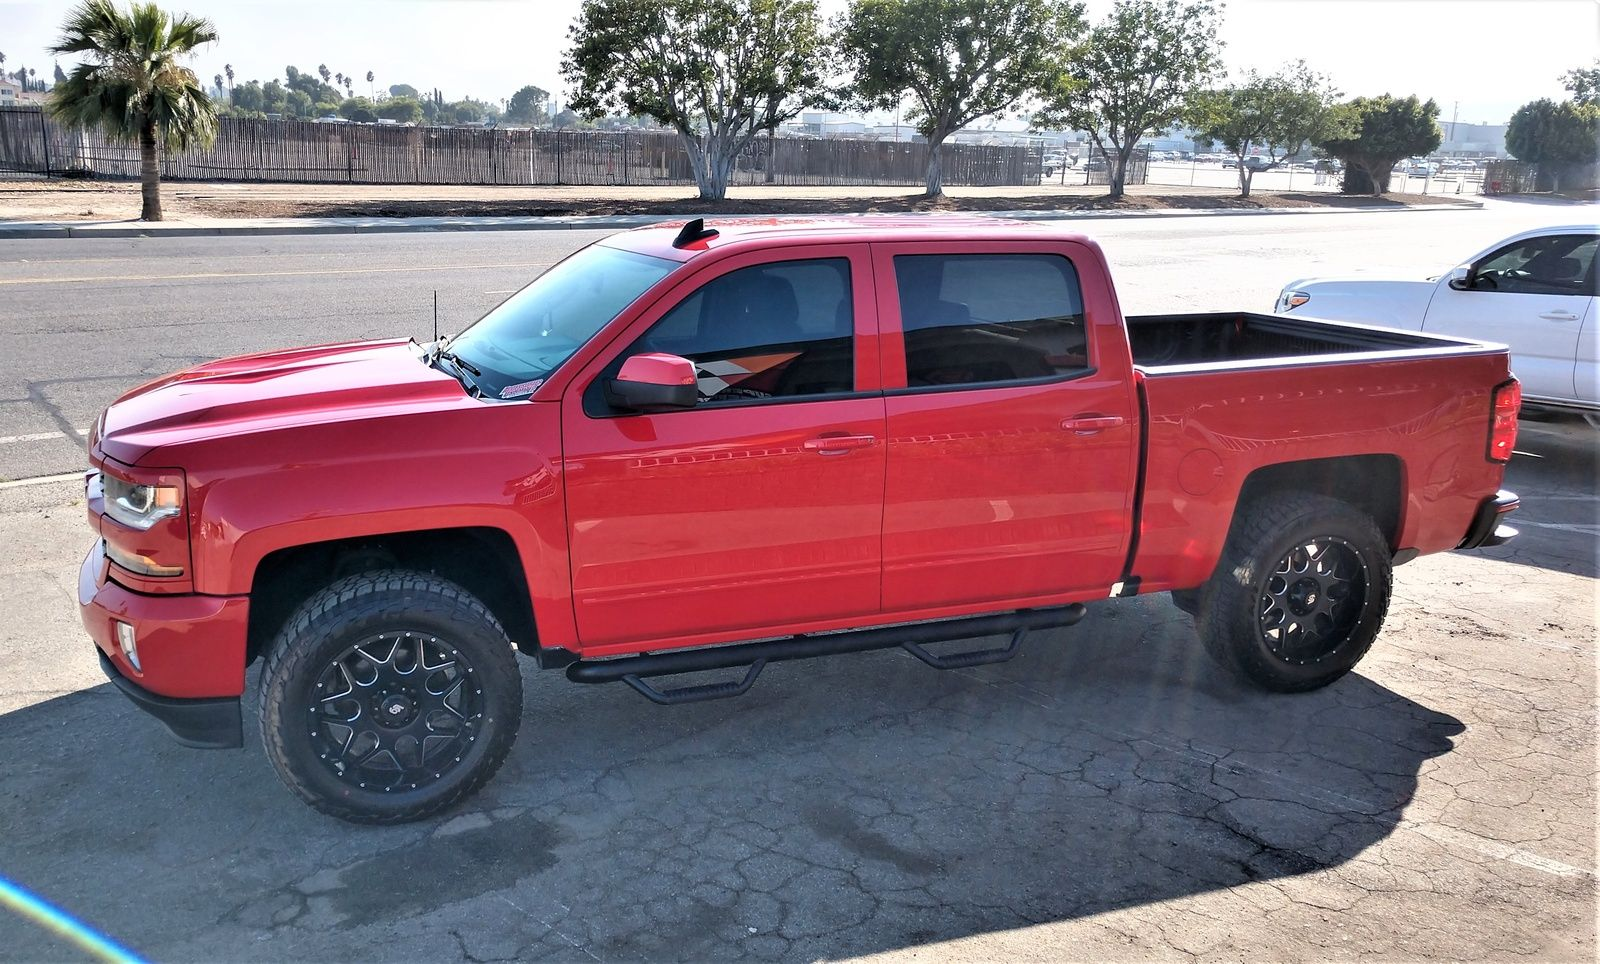 Chevy New Colorado Short Box Crew Cab Red With Best Offer Price At Westside Chevrolet Chevrolet Colorado Chevrolet Silverado 1500 Silverado 1500 For Sale